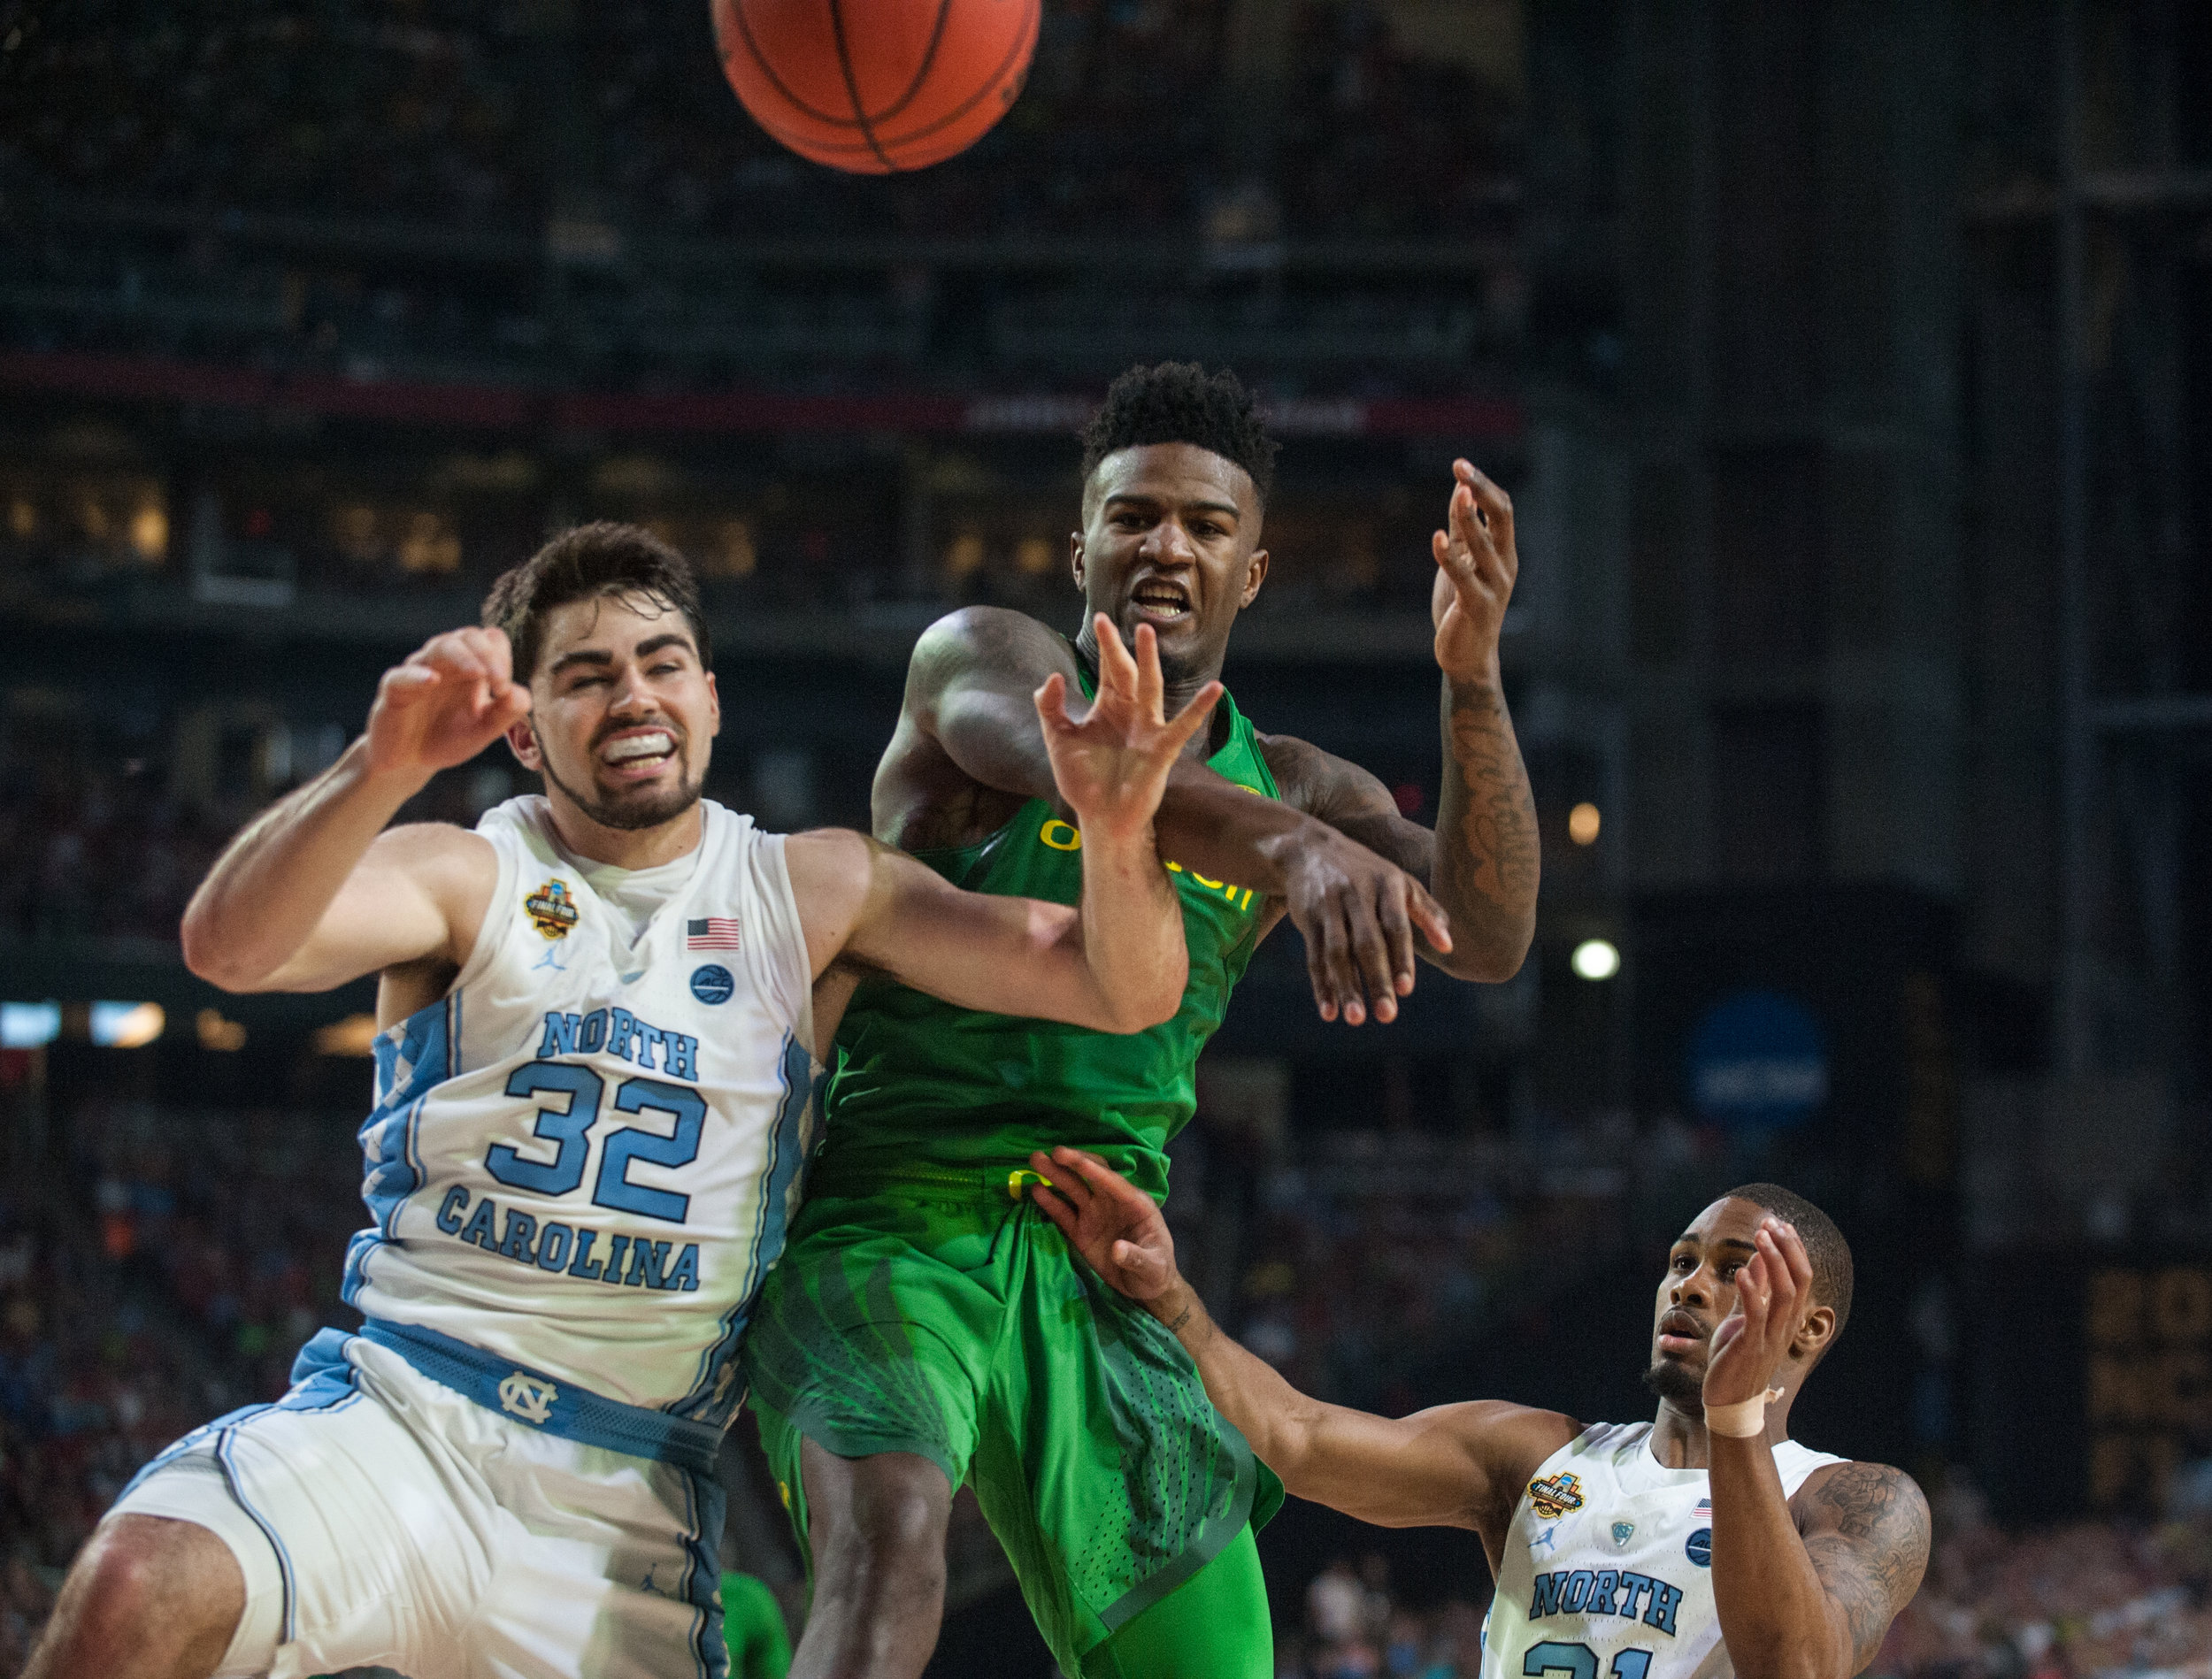 17.03.31.emg.an.final.four.oregon.vs.north.carolina-24.jpg